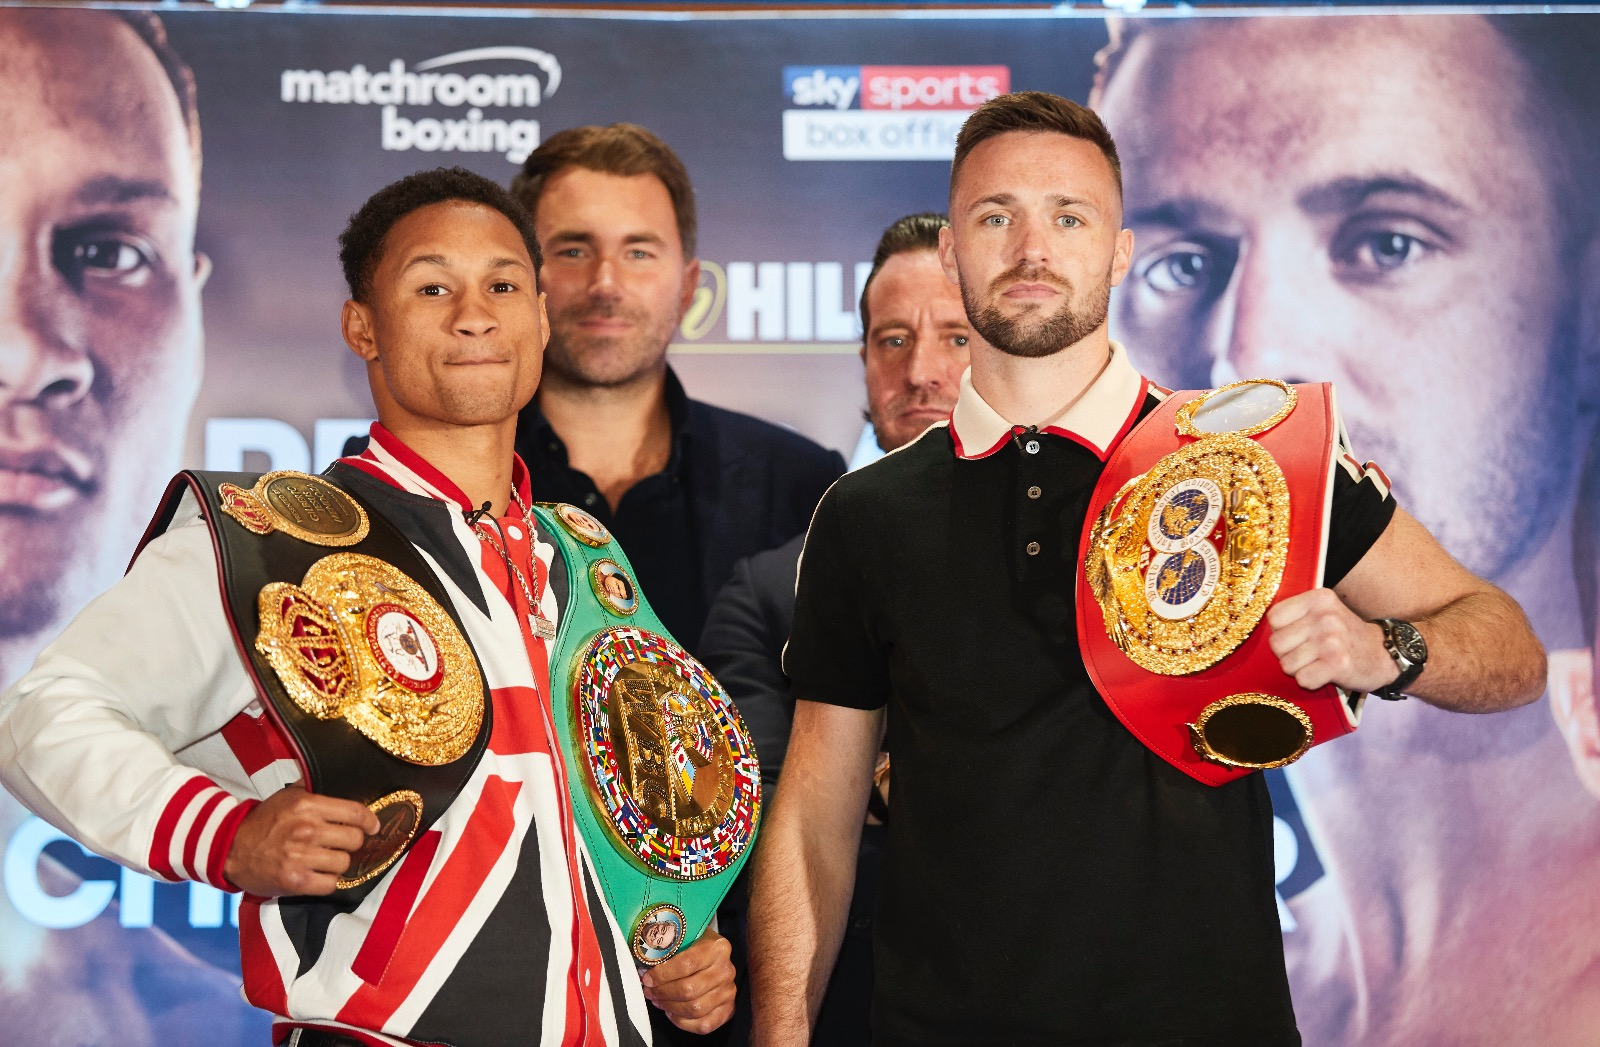 Prograis and Taylor present their fight in England